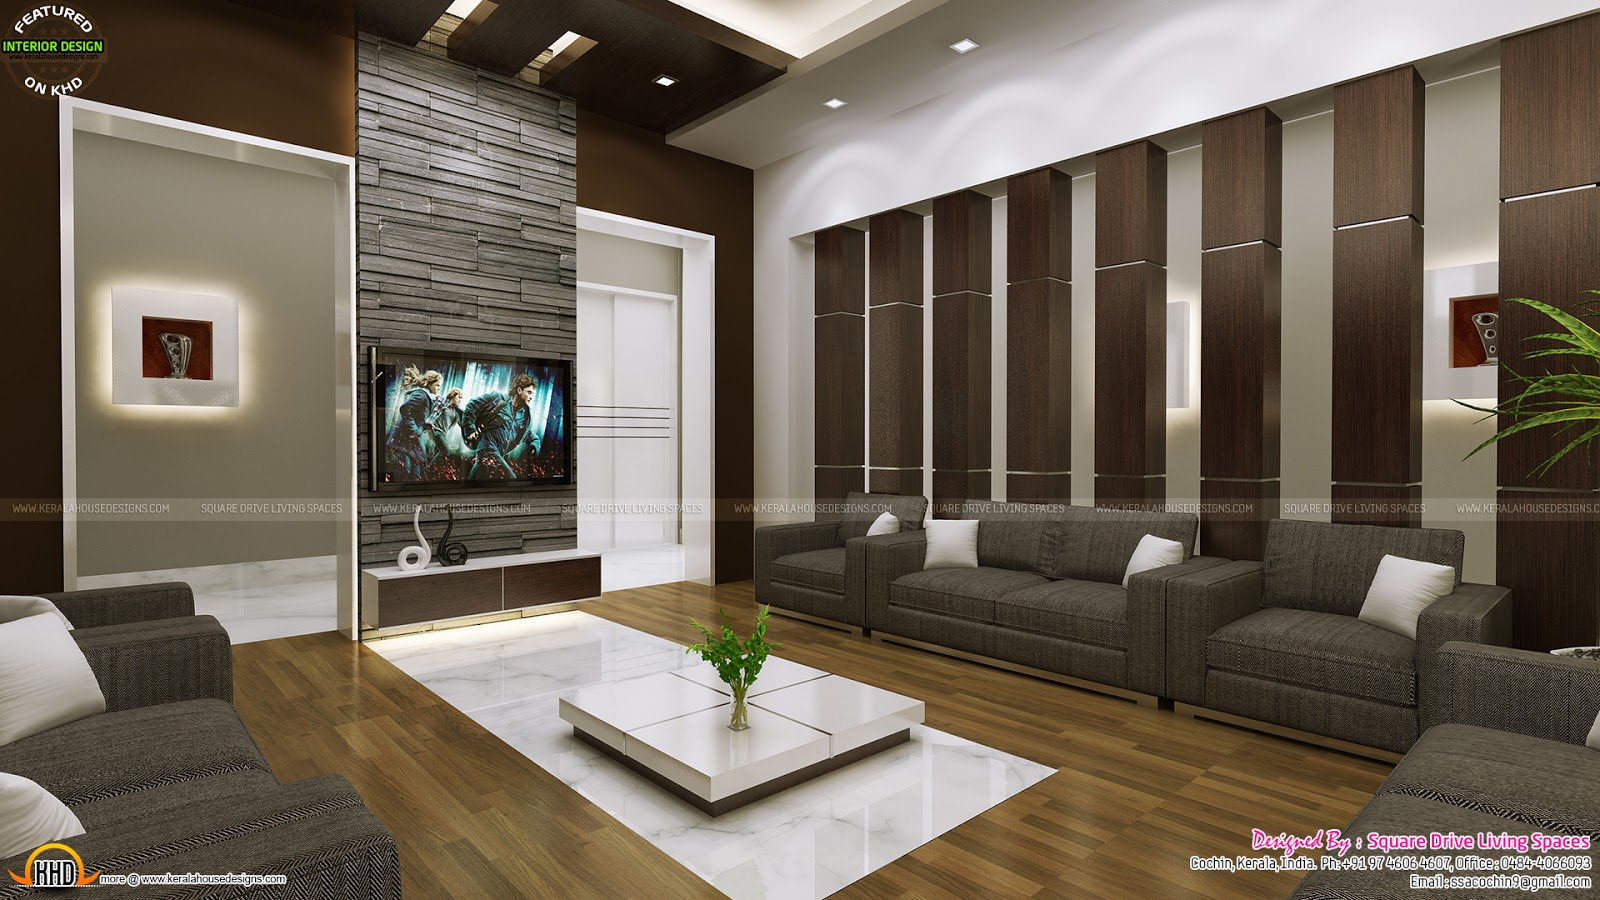 Attractive home interior ideas kerala home design and for House design interior decorating